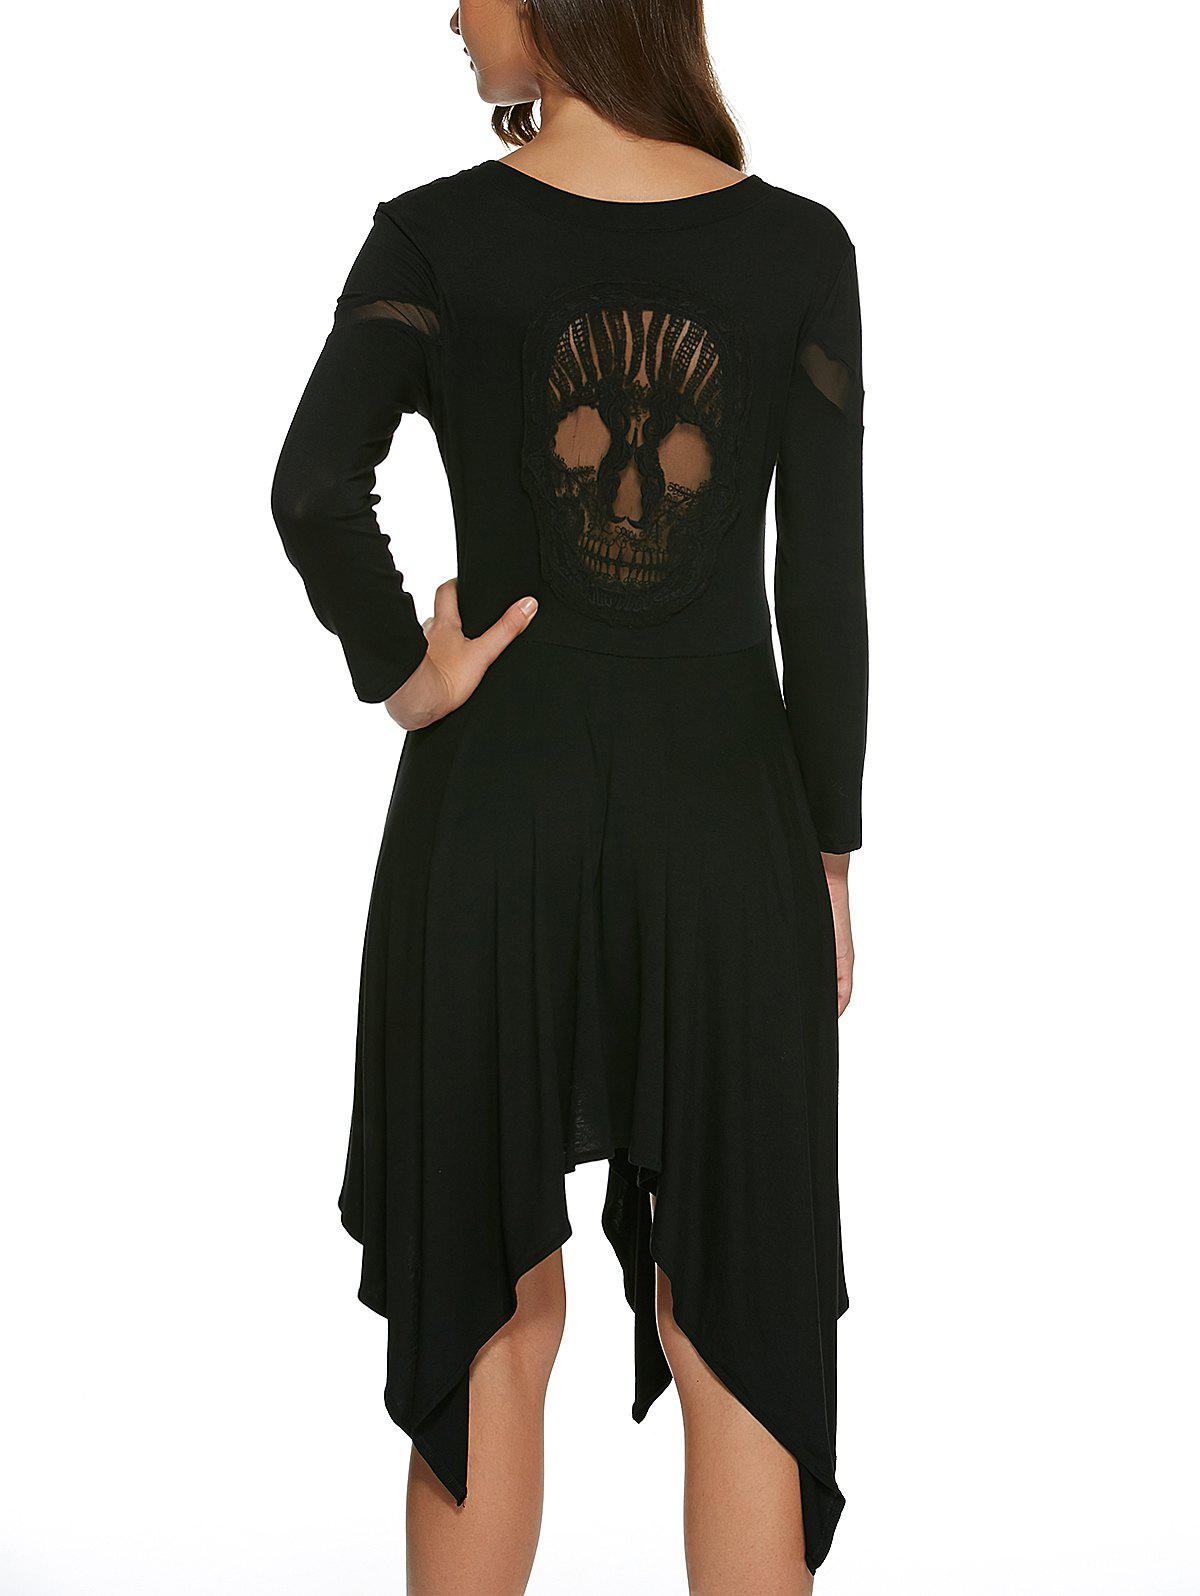 Skull Pattern Hollow Out Handckerchief Dress - BLACK S